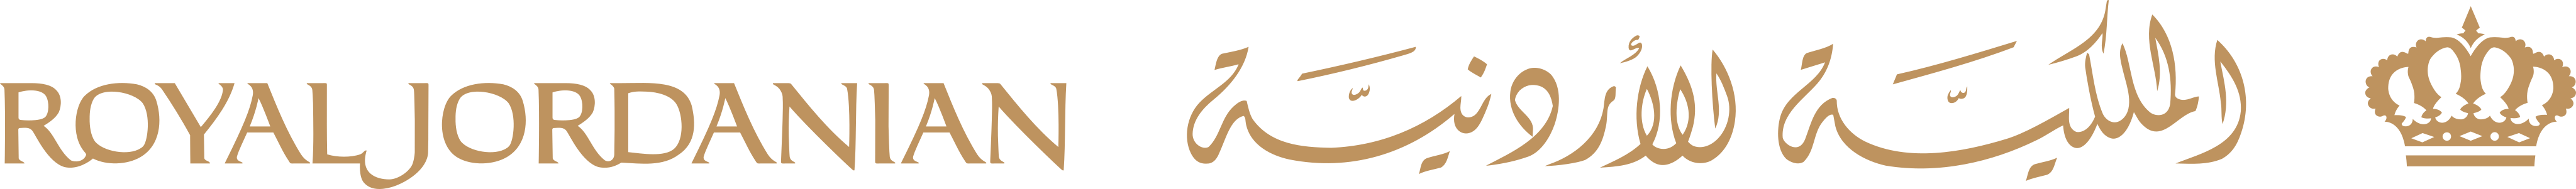 royal jordanian logo - Royal Jordanian Airlines Logo